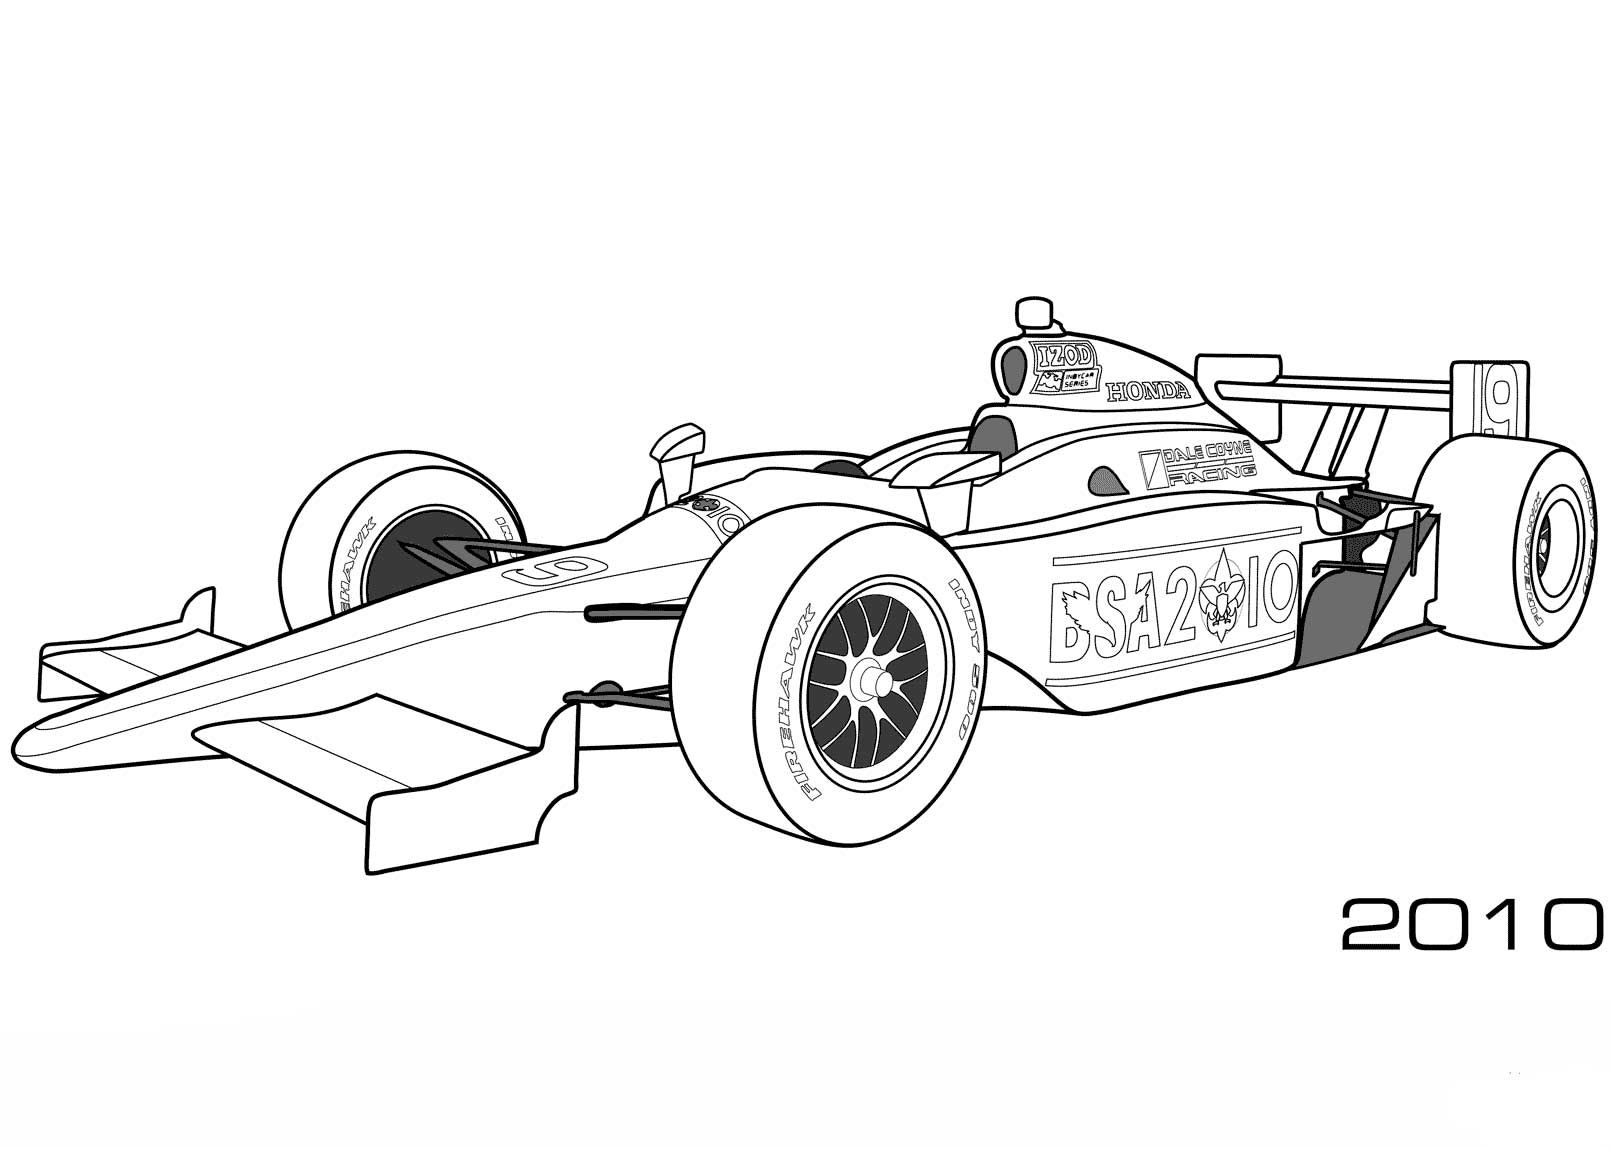 Dale Coyne Racing Bsa 2010 Indy Car Helpful Coloring Cartoon Coloring Pages Coloring Pages Sports Coloring Pages